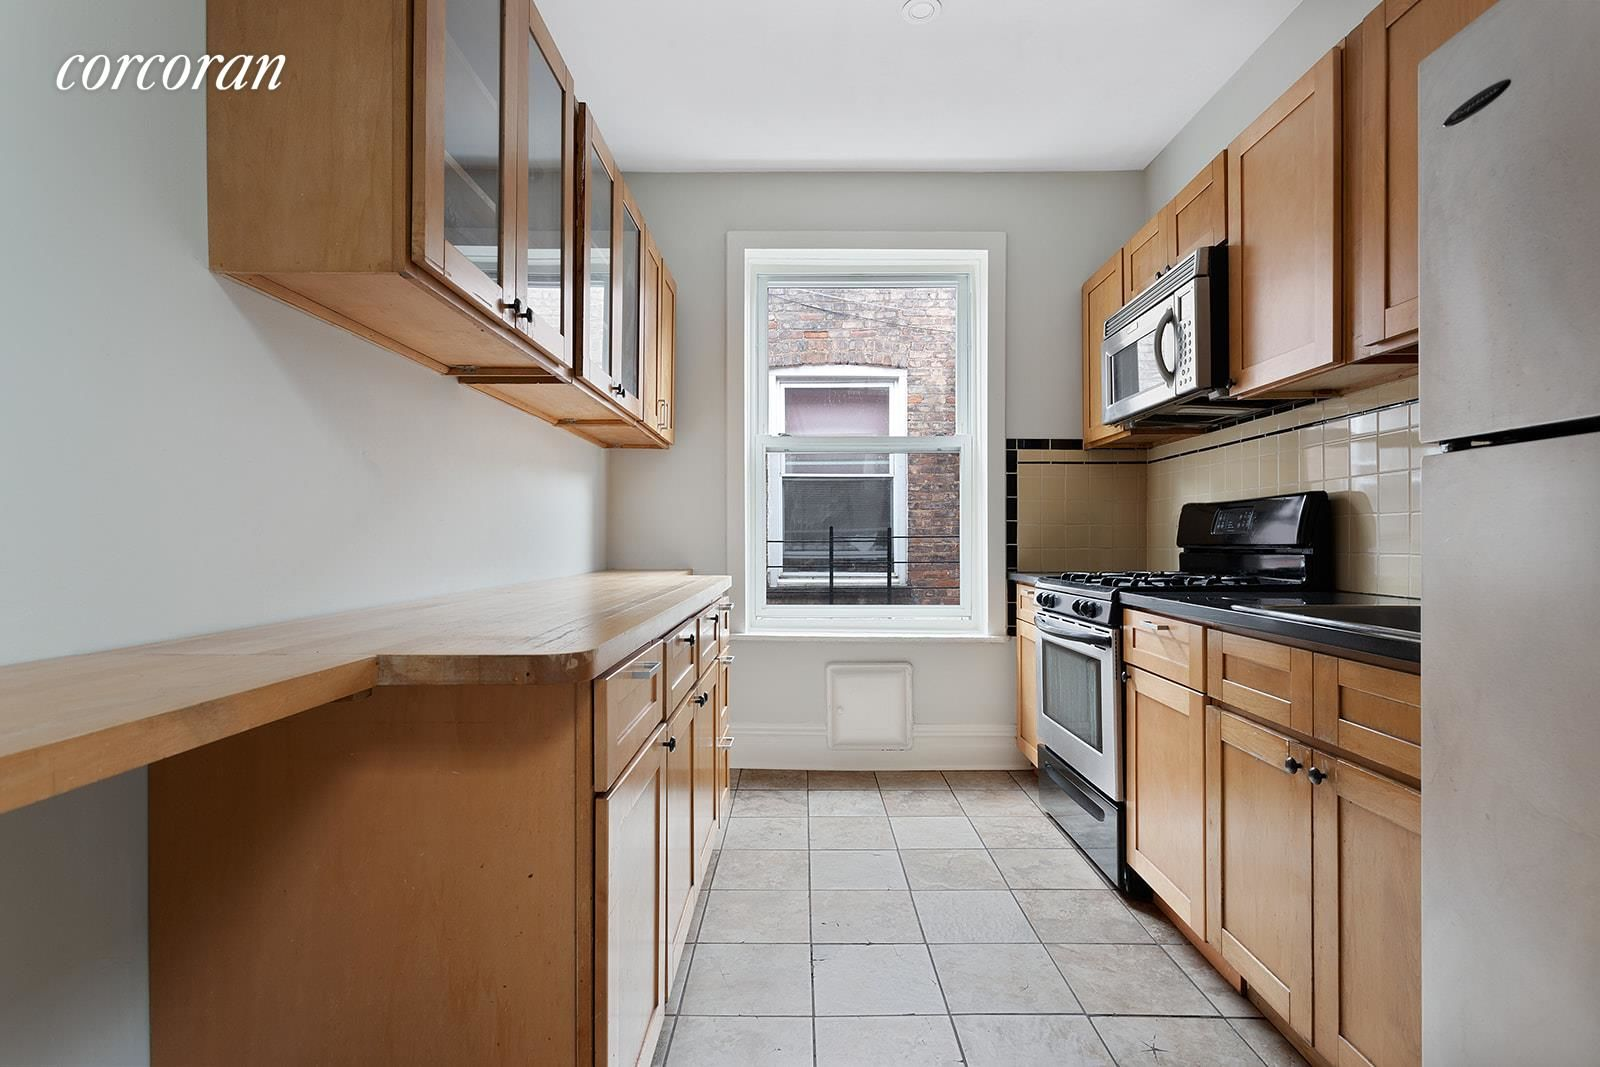 566 Osborn St Photo 10 - NYC-Real-Estate-681128